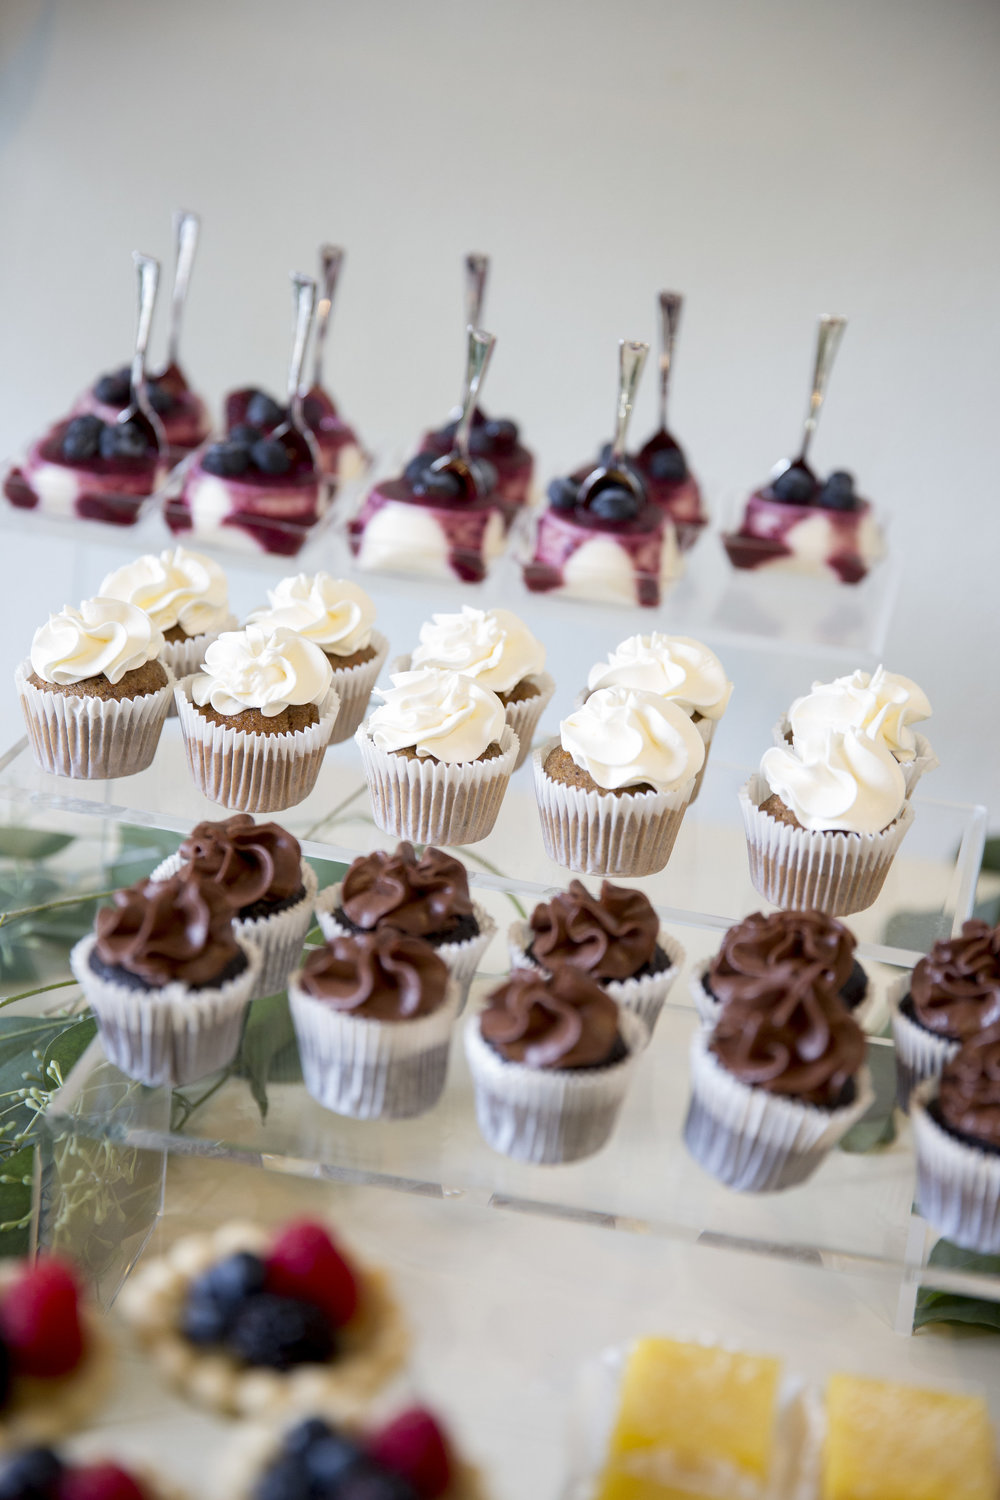 www.santabarbaraweddingstyle | dessert buffet | Dessert ideas | assorted desserts | lele patisserie | Kristen Beinke Photography